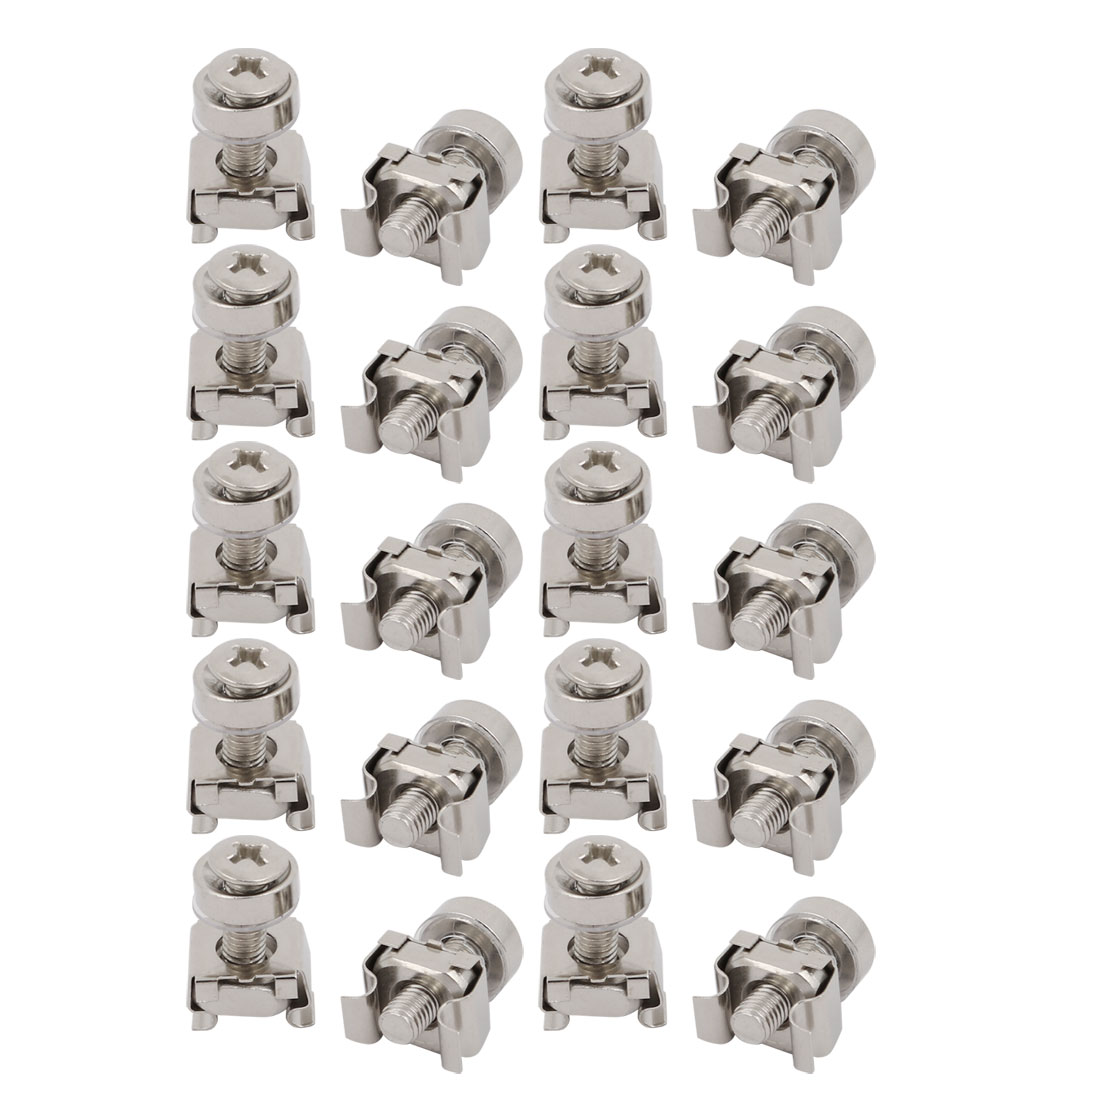 20pcs M5x20mm Carbon Steel Cage Nuts w Screws Washers for Server Rack Cabinet